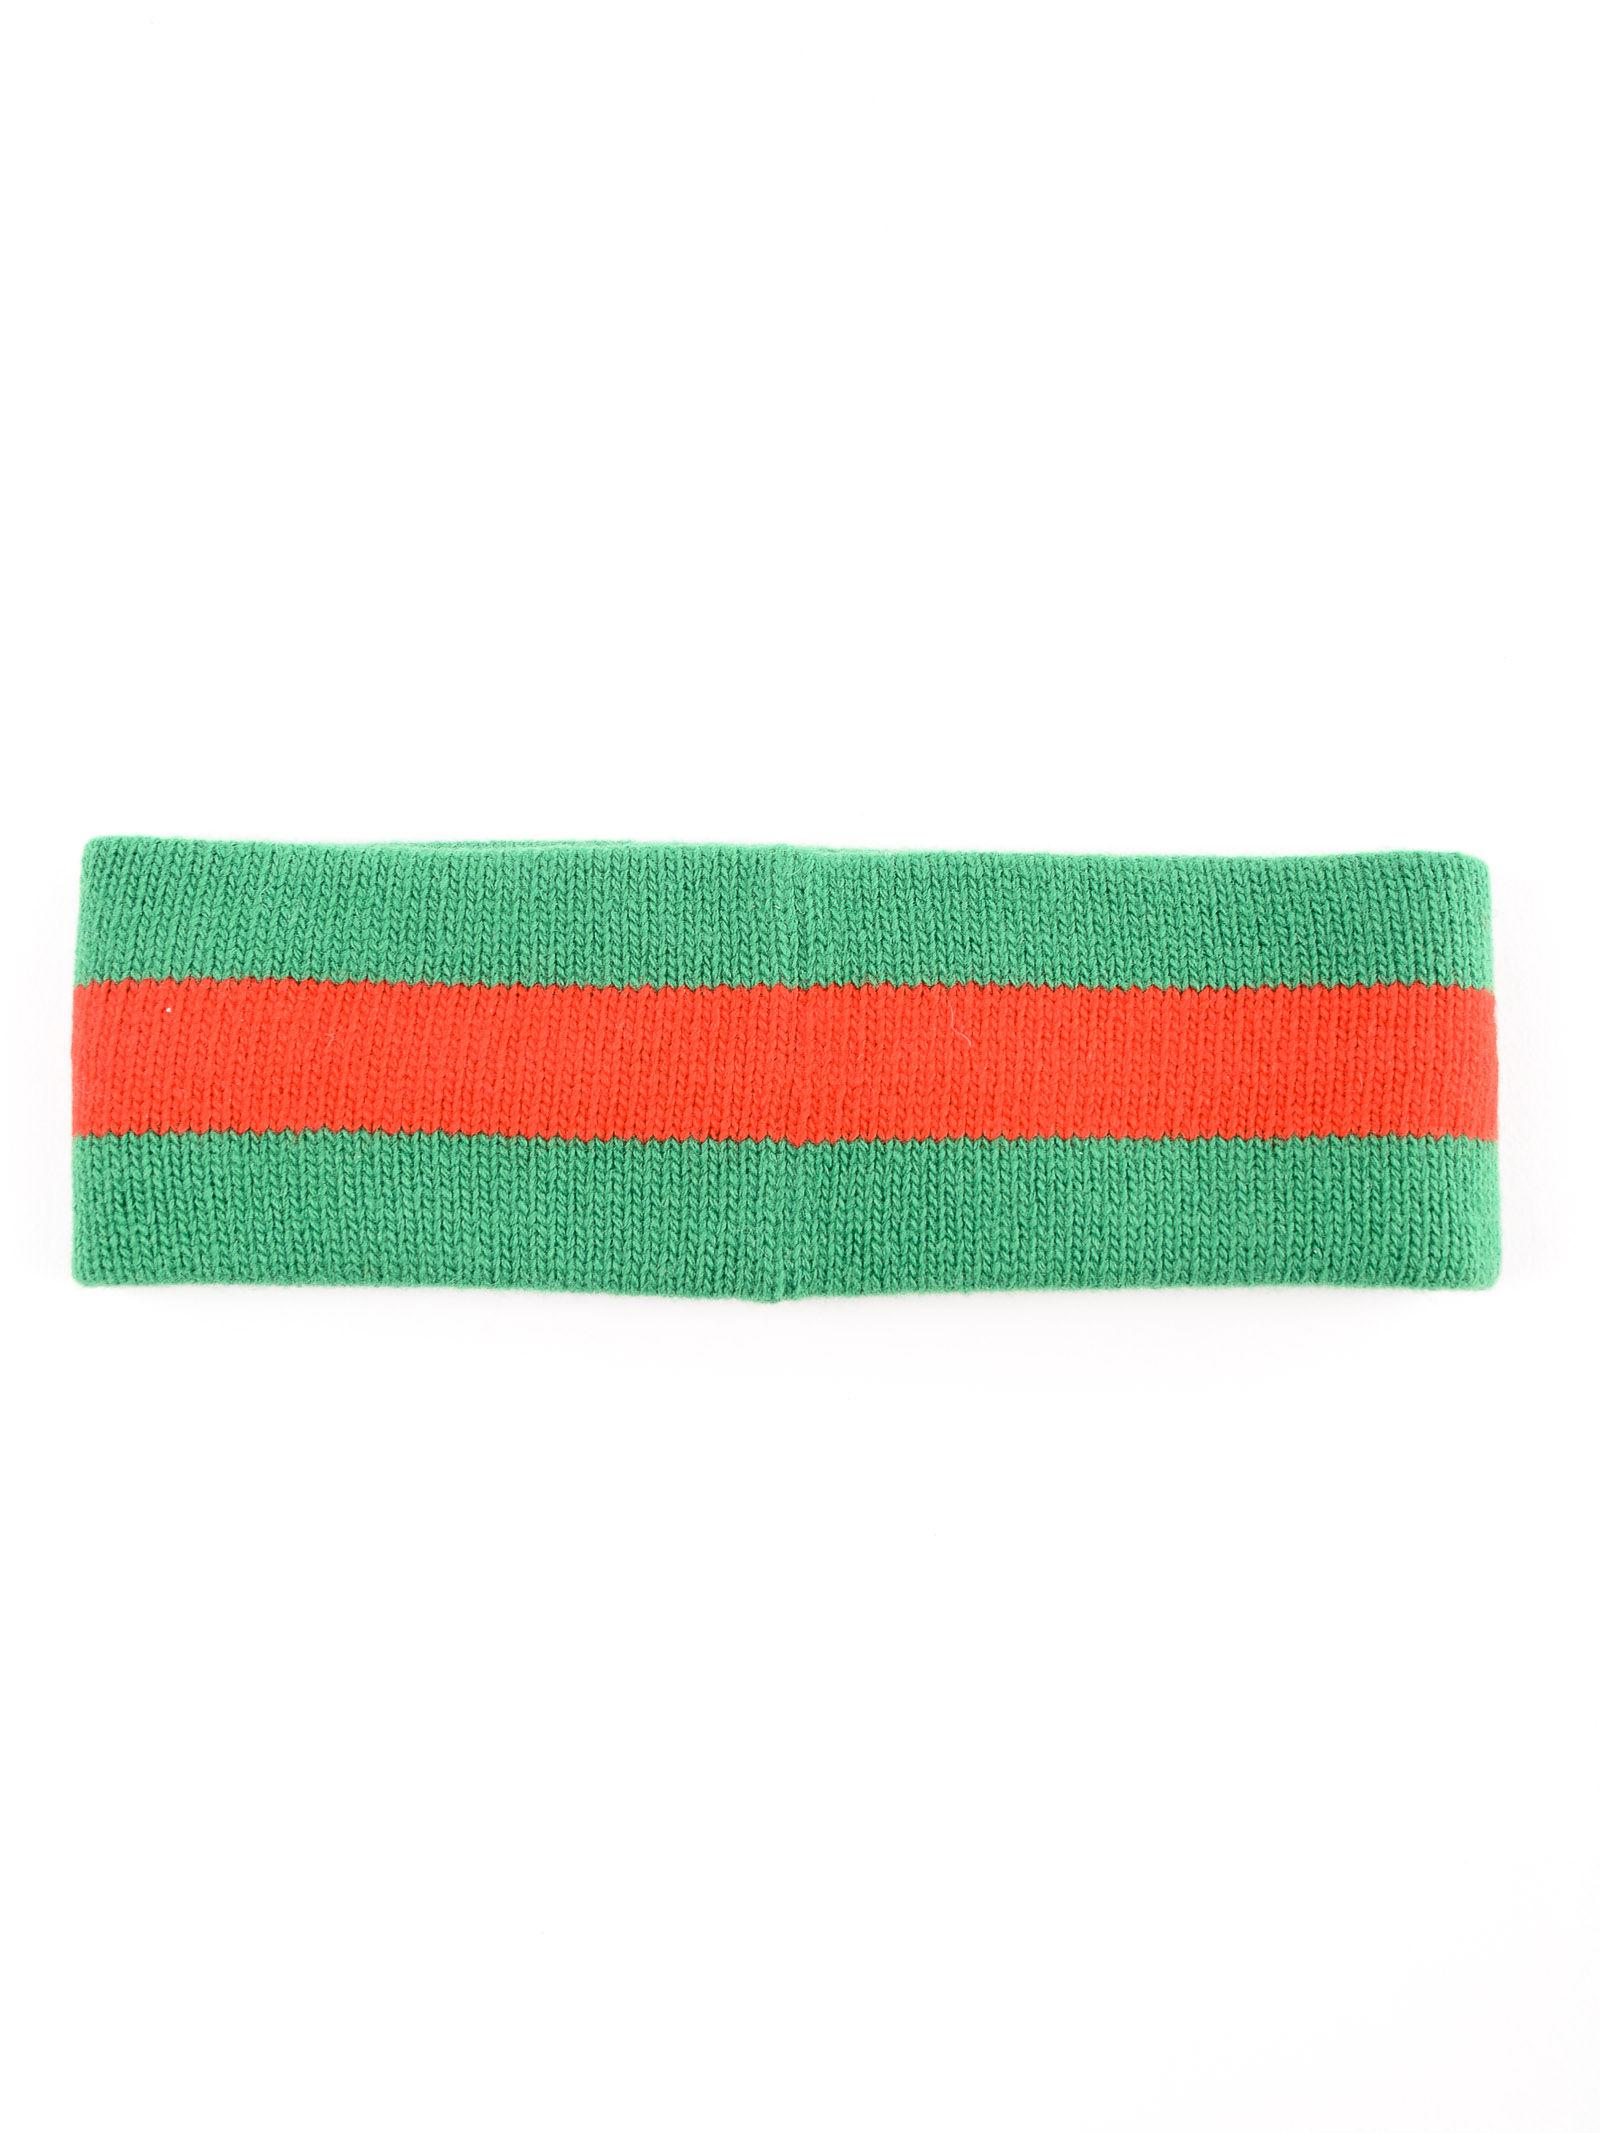 88995e6eedd Lyst - Gucci Gg Lock Hair Band in Green